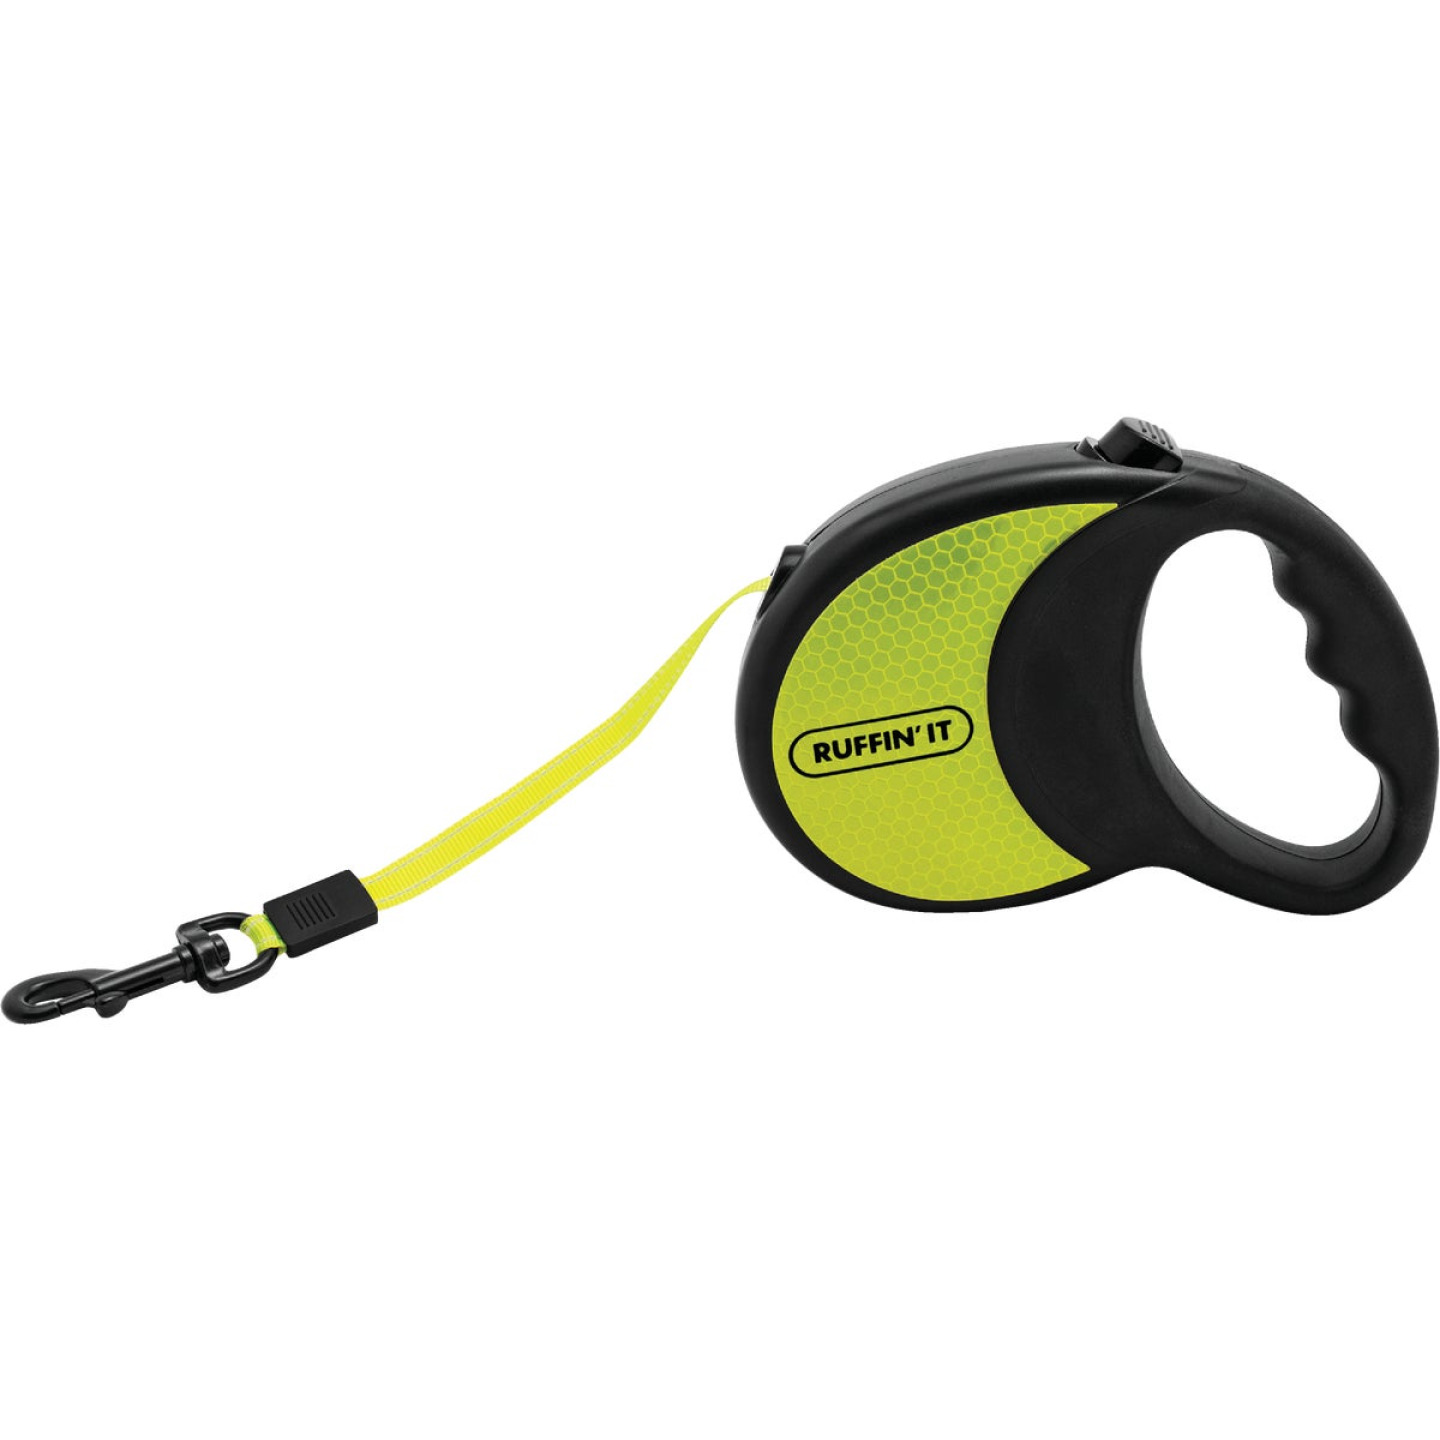 Westminster Pet Ruffin' it 10 Ft. Webbed Reflective Neon Yellow Up to 50 Lb. Dog Retractable Leash Image 1